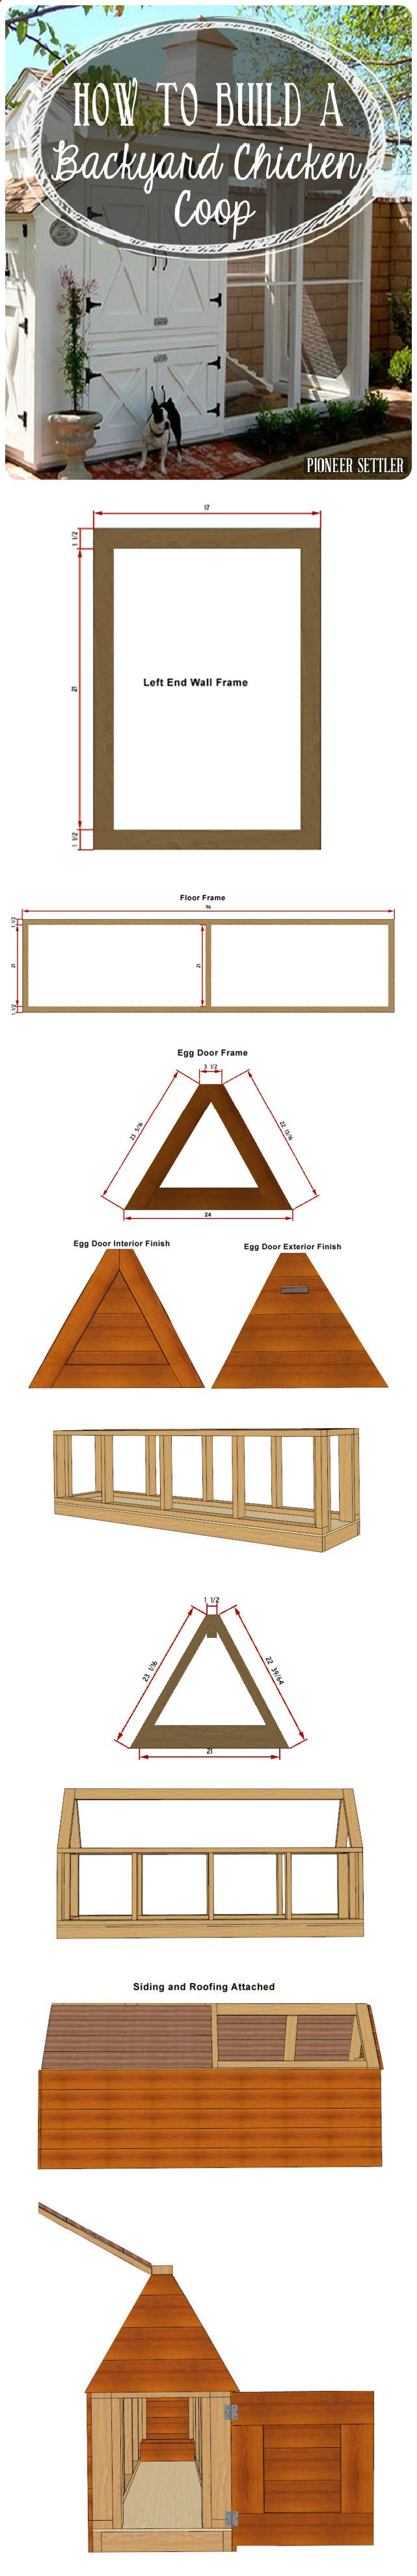 how to build a backyard chicken coop chicken and poultry